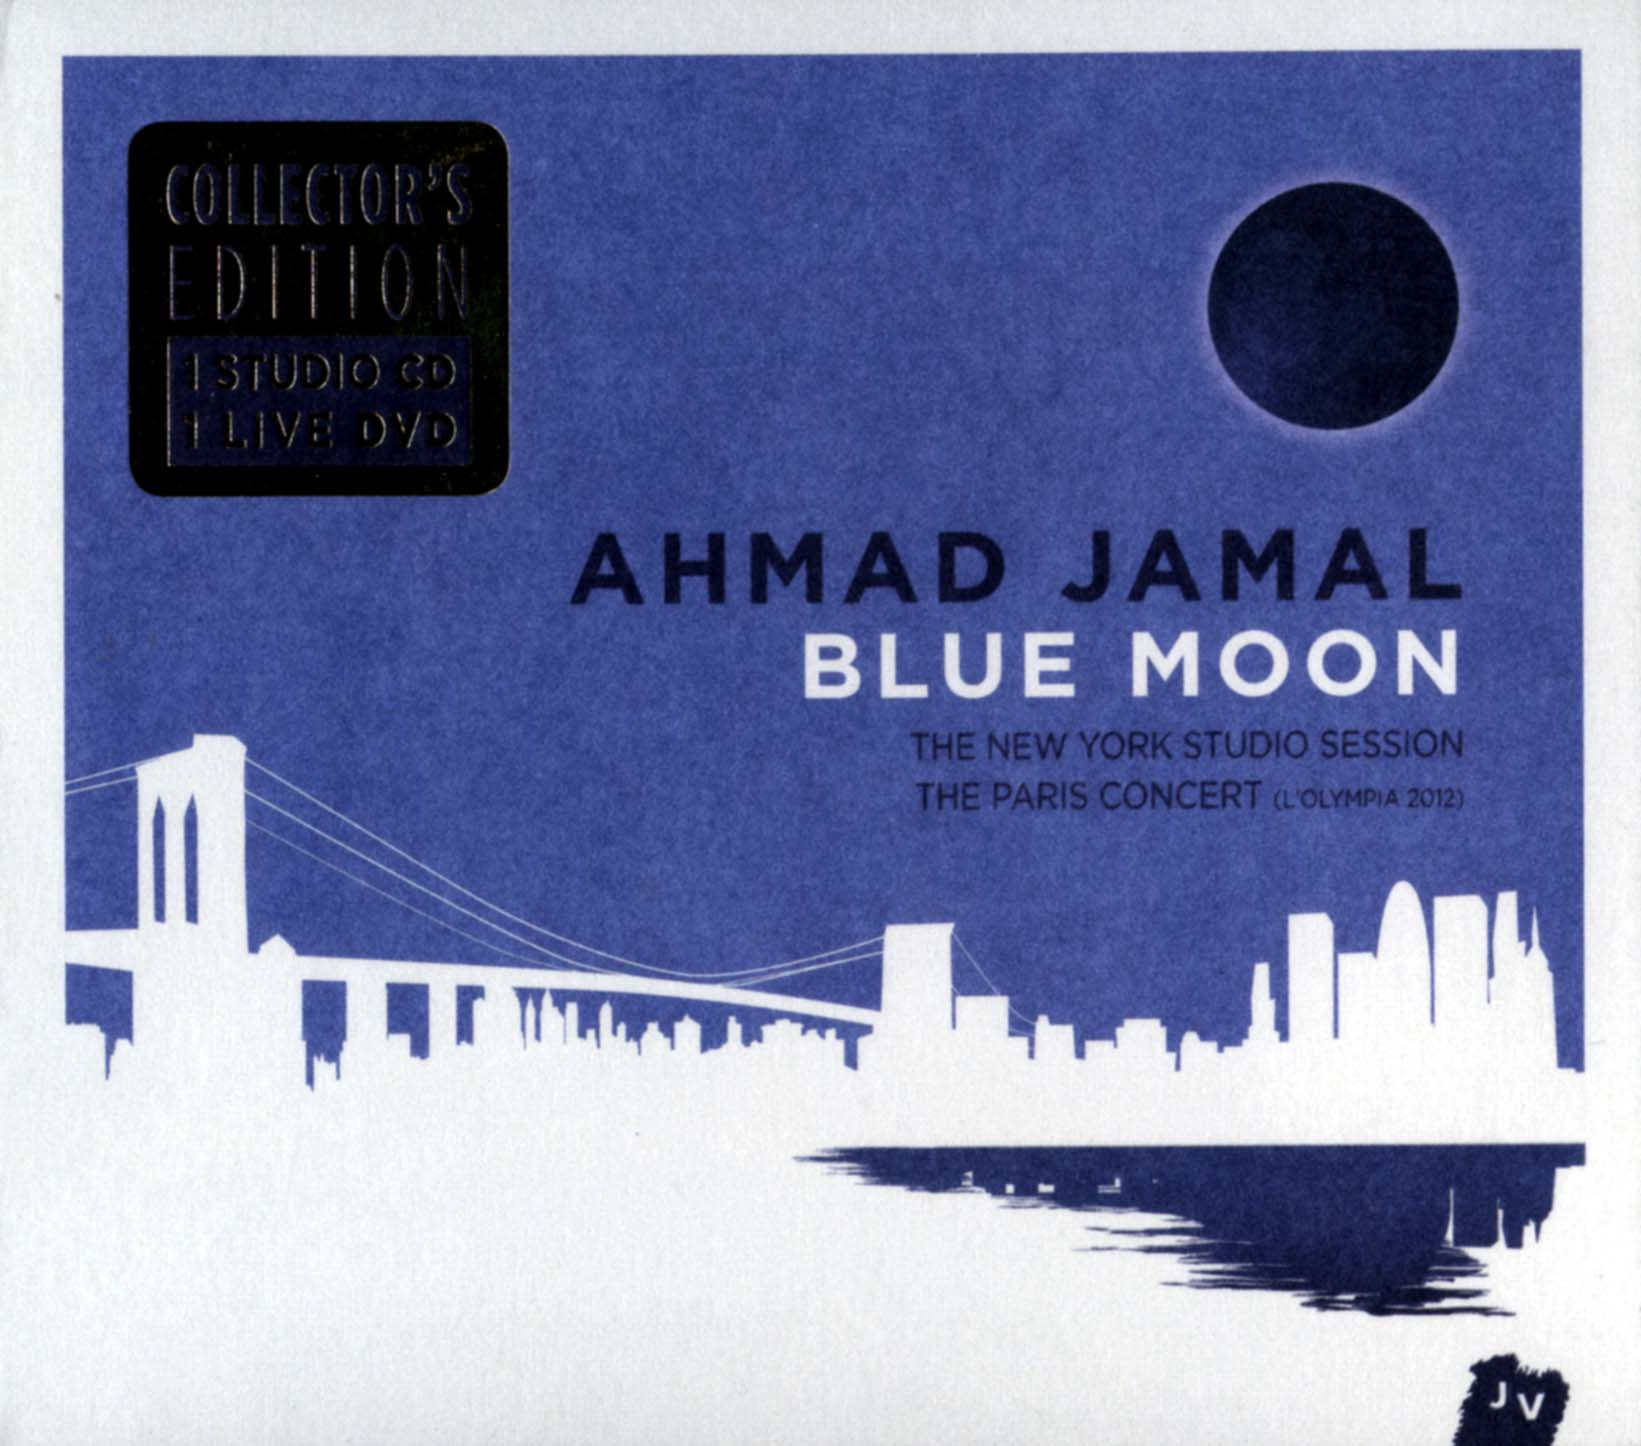 Ahmad Jamal: Blue Moon - The Paris Concert (L'Olympia 2012)